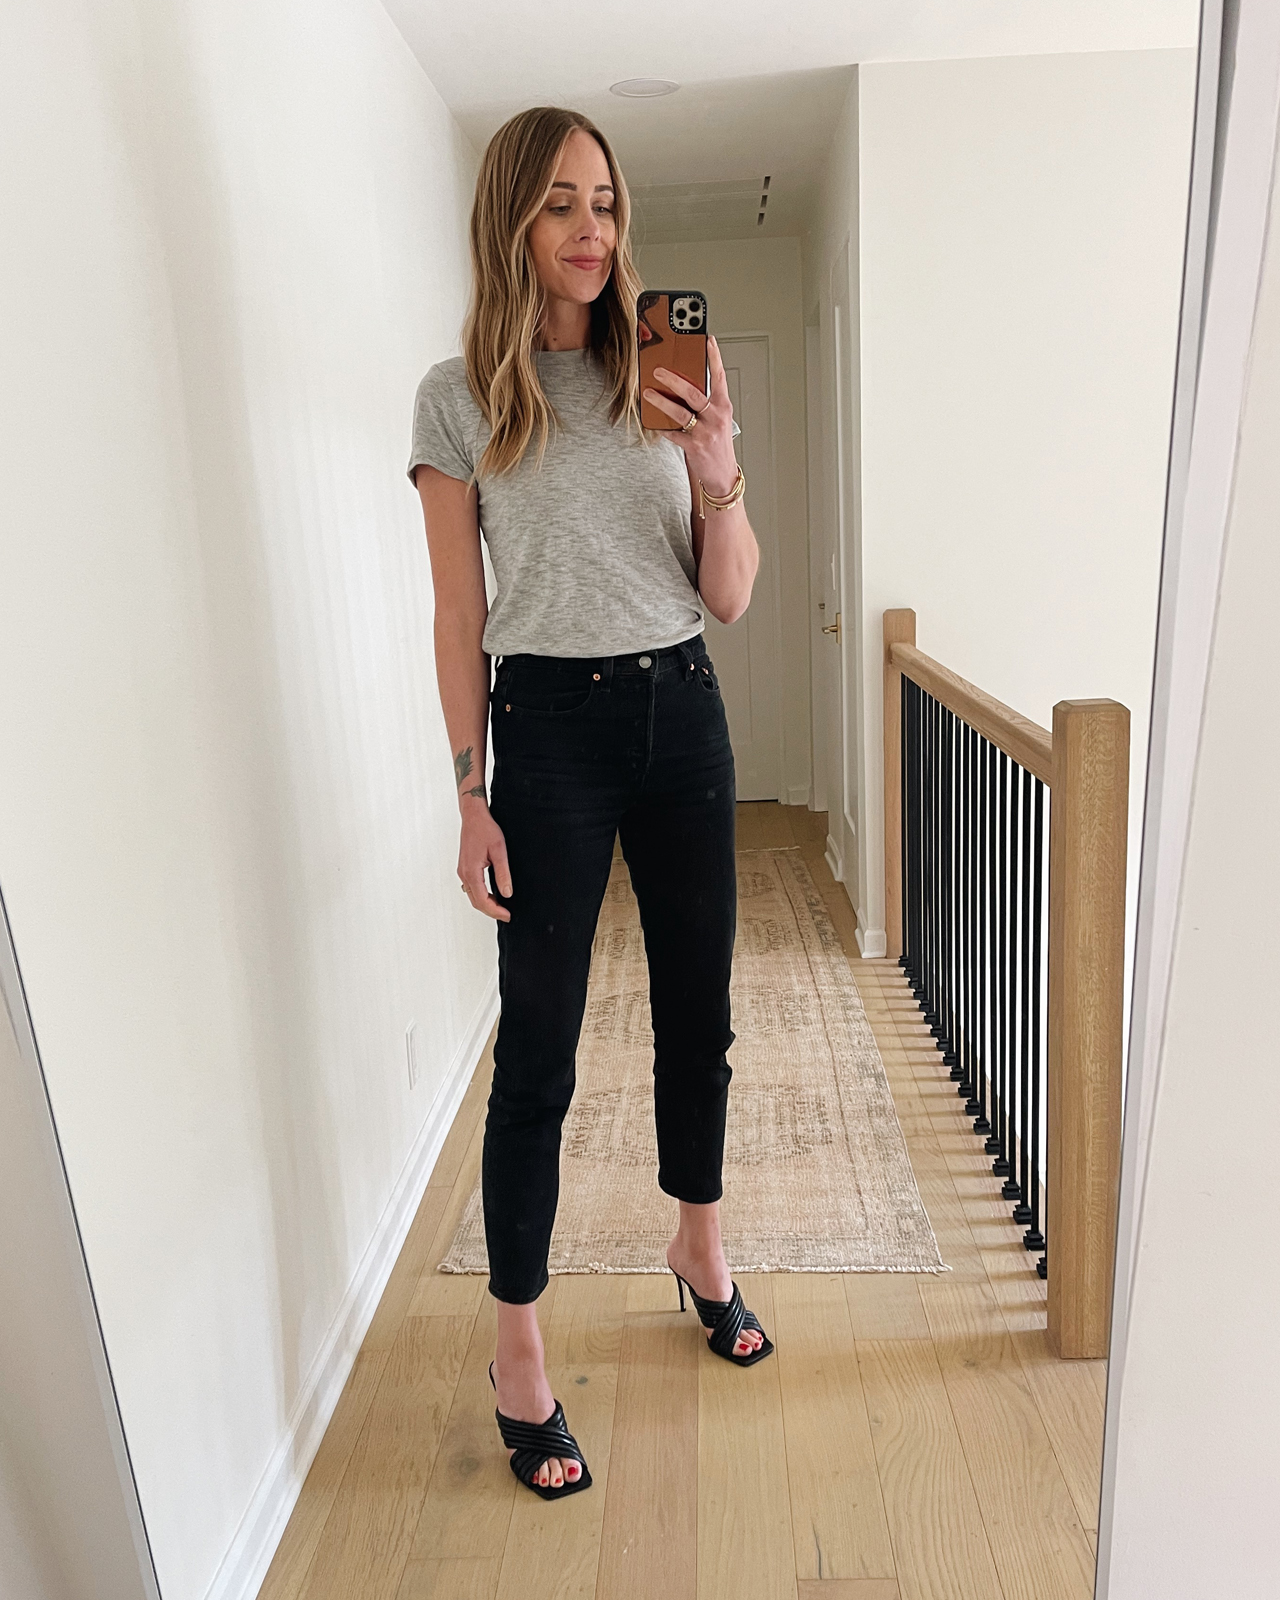 Fashion Jackson Wearing Levis Wedgie Icon Fit Jeans Review Black Grey Tshirt Black Heeled Sandals